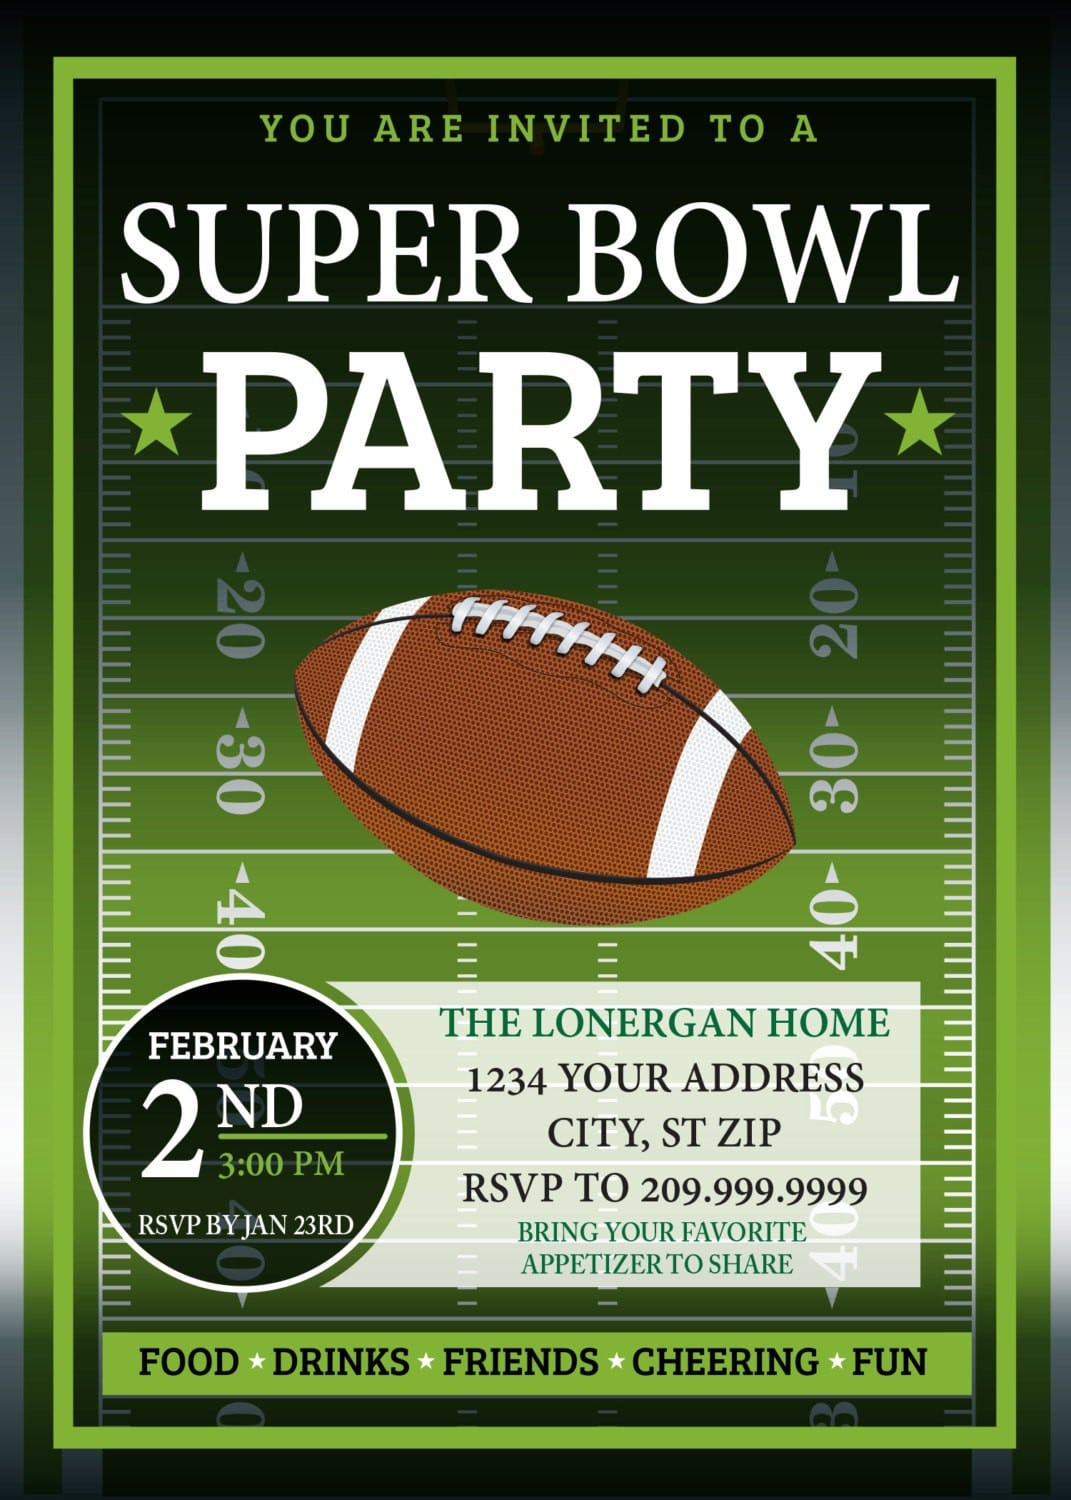 Superbowl Party Invite Images